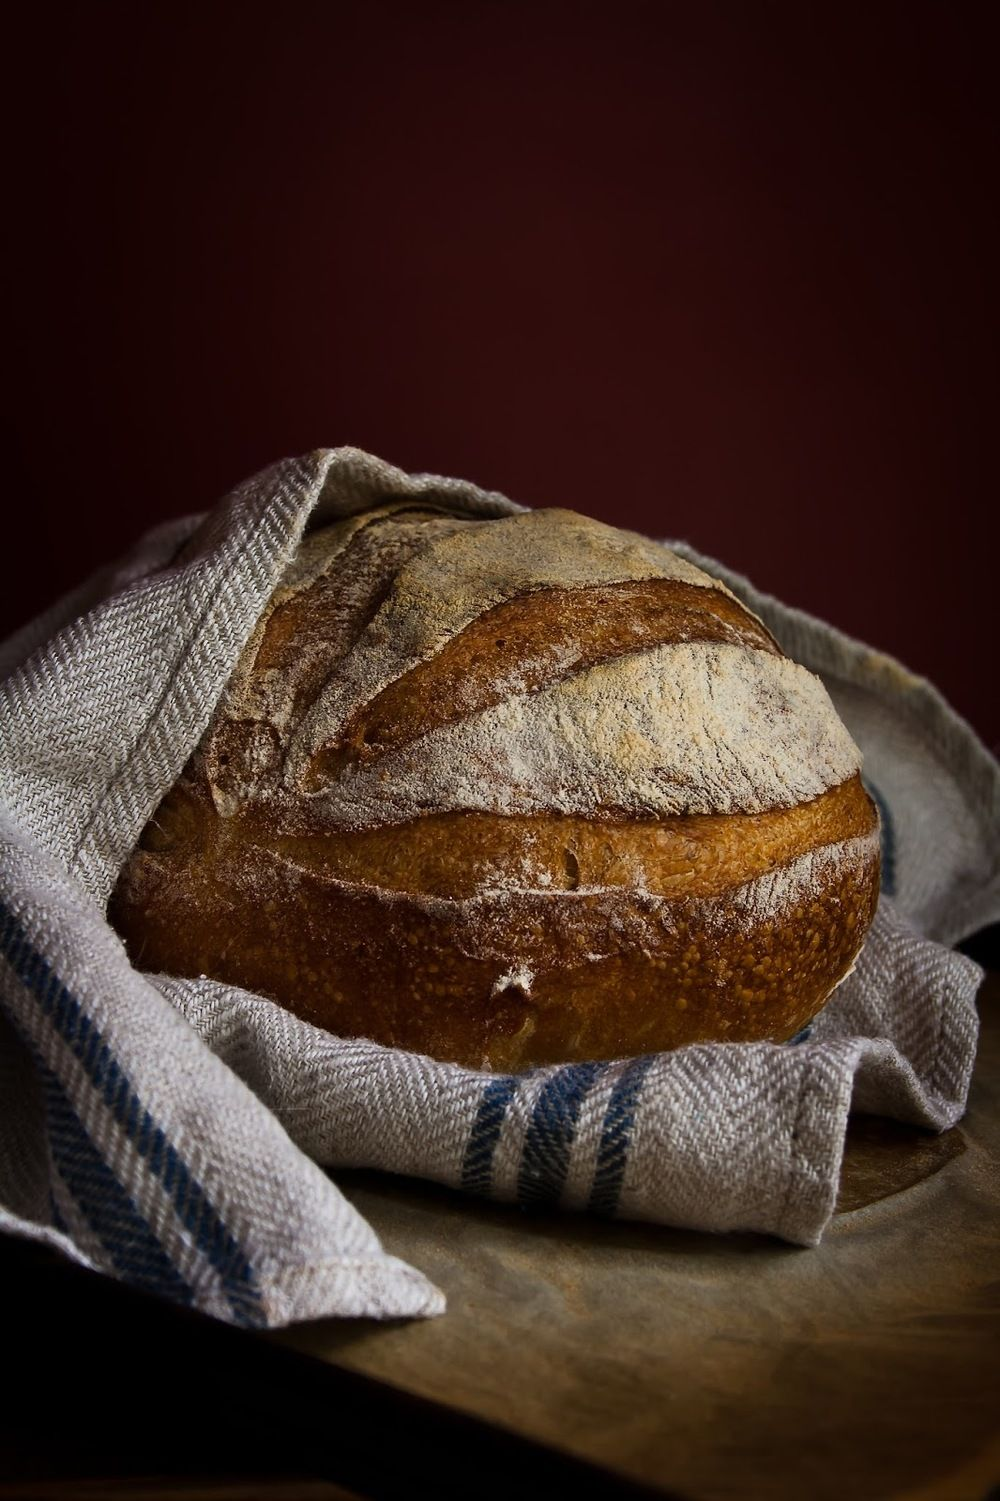 Basic Bread Dough With Images Bread Dough Bread Rustic Bread